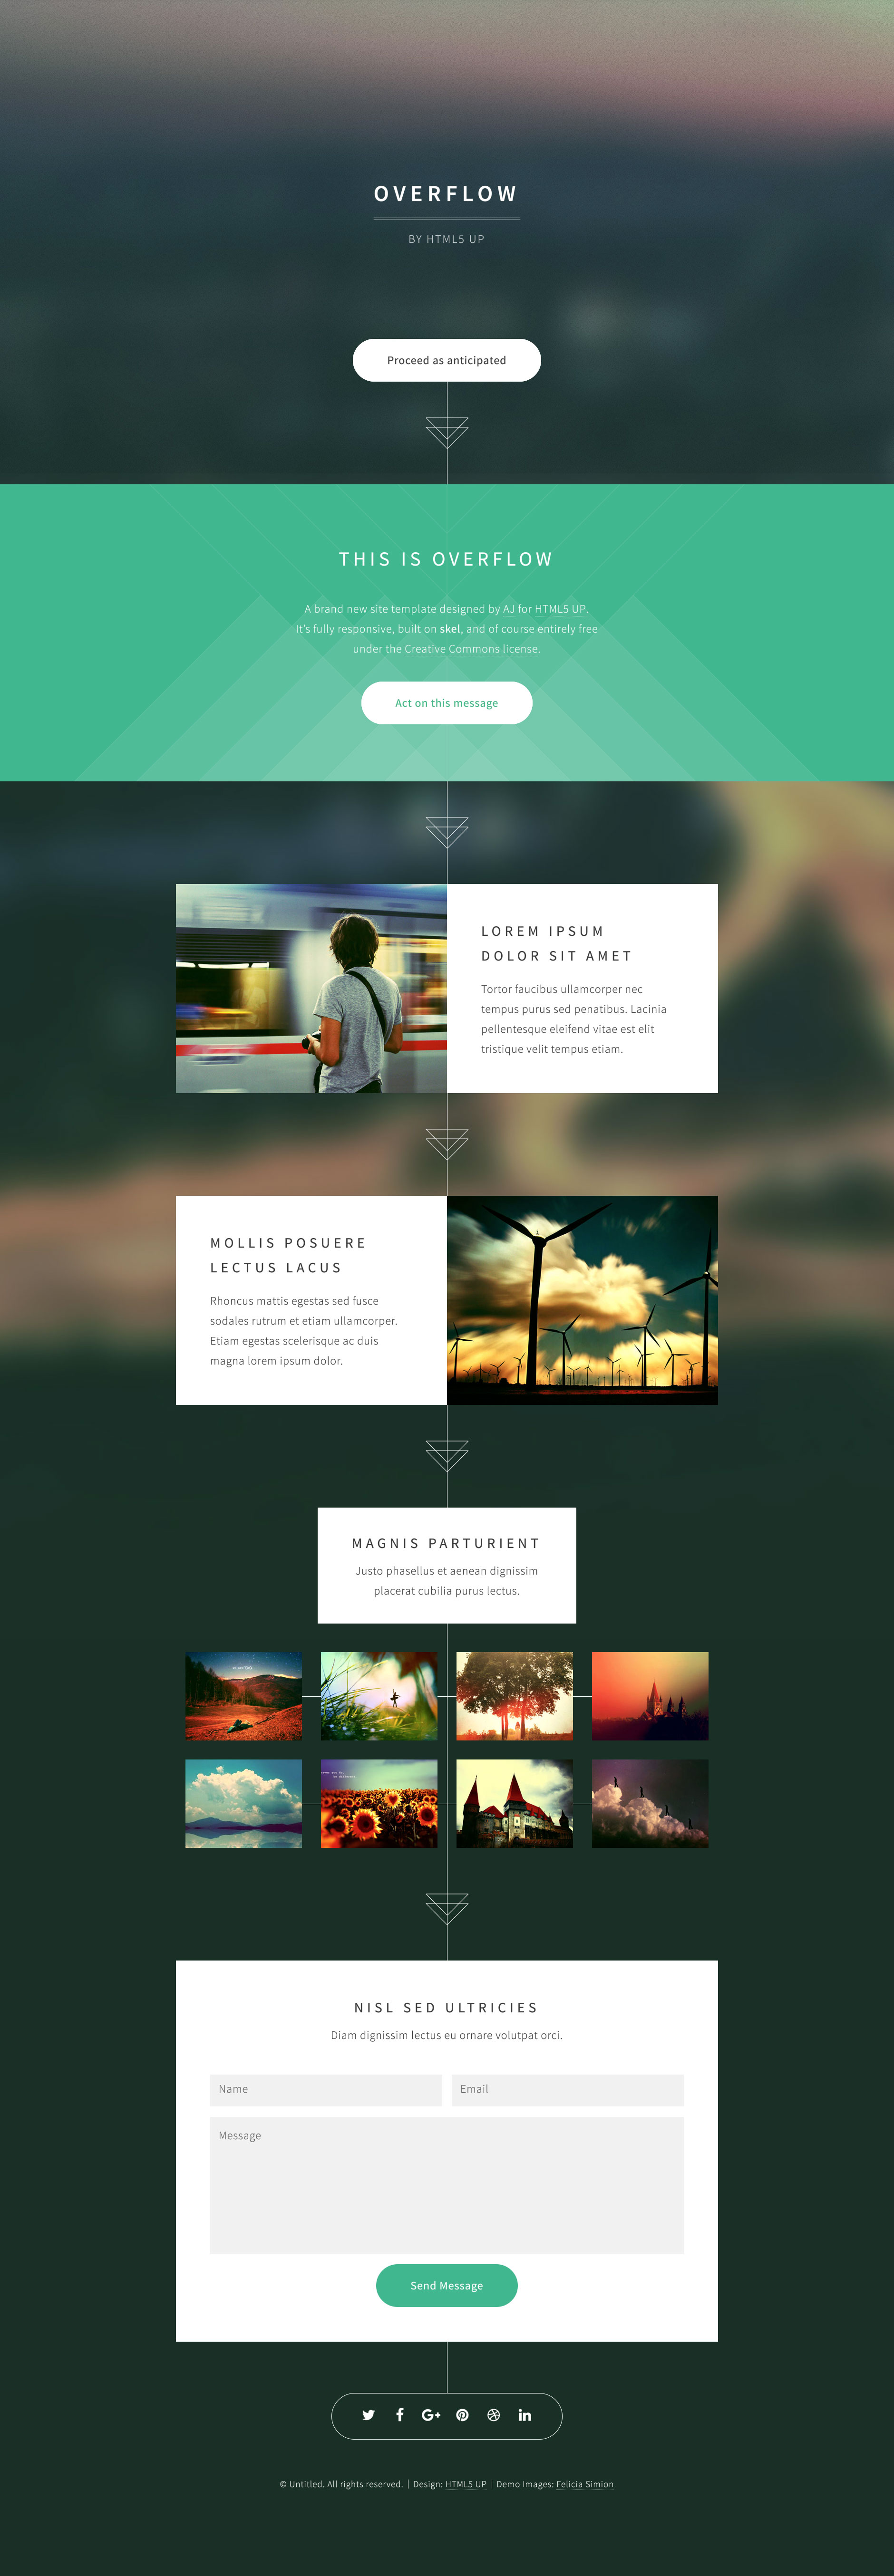 Overflow is a free html5 One page website template with full width Parallax header and pop-up gallery lightbox. Ideal for your design or photography showcase. Overflow template is based on the latest HTML5 and CSS3.